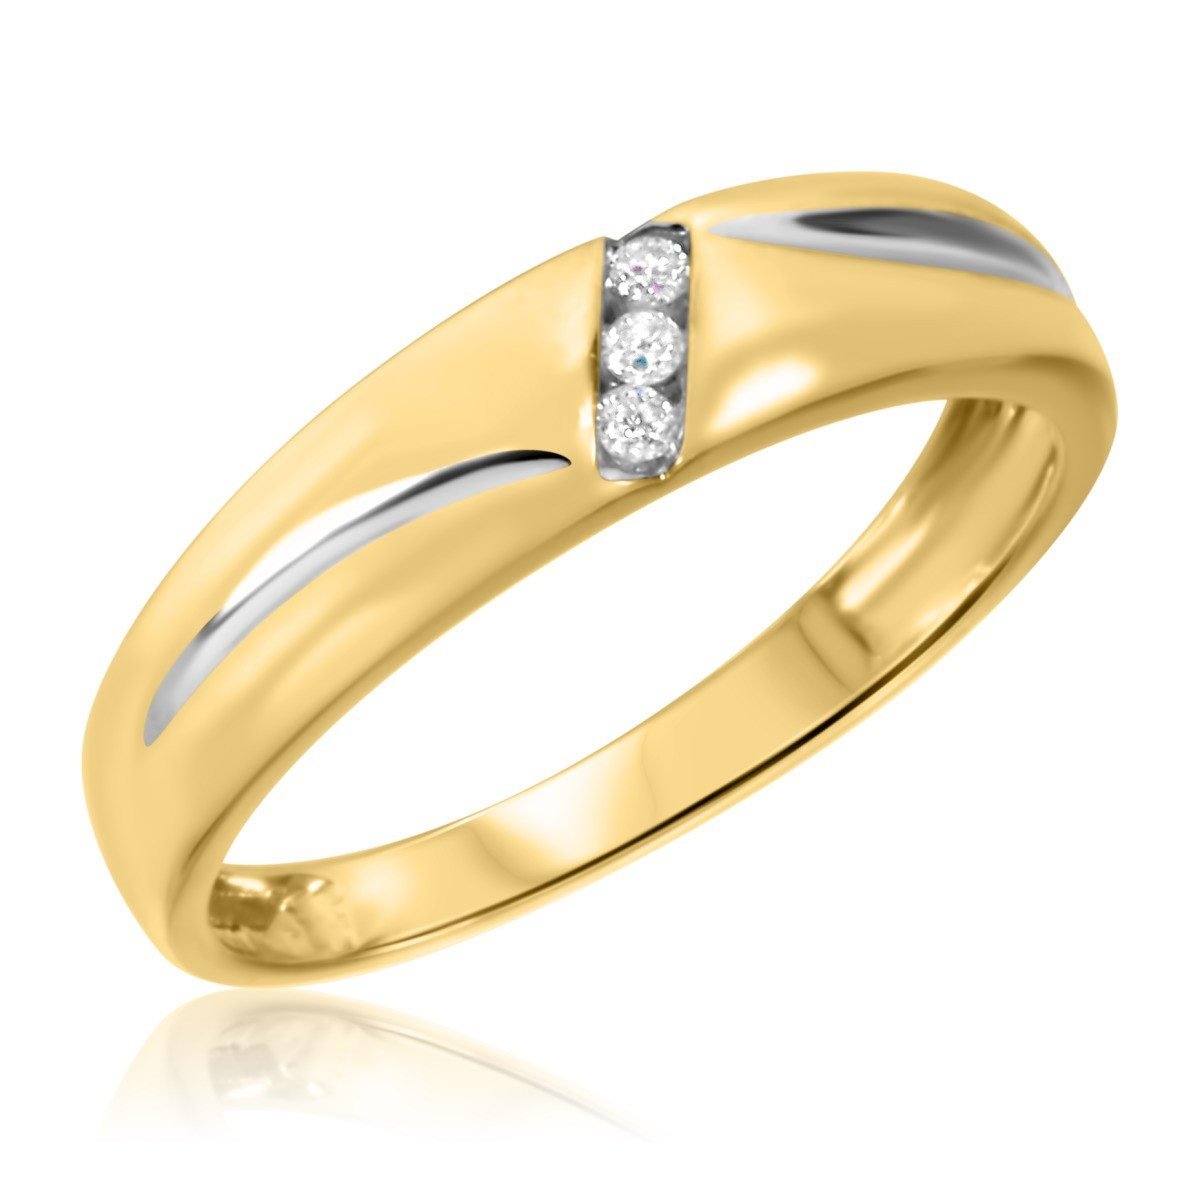 1/25 CT. T.W. Diamond Ladies' Wedding Band 10K Yellow Gold